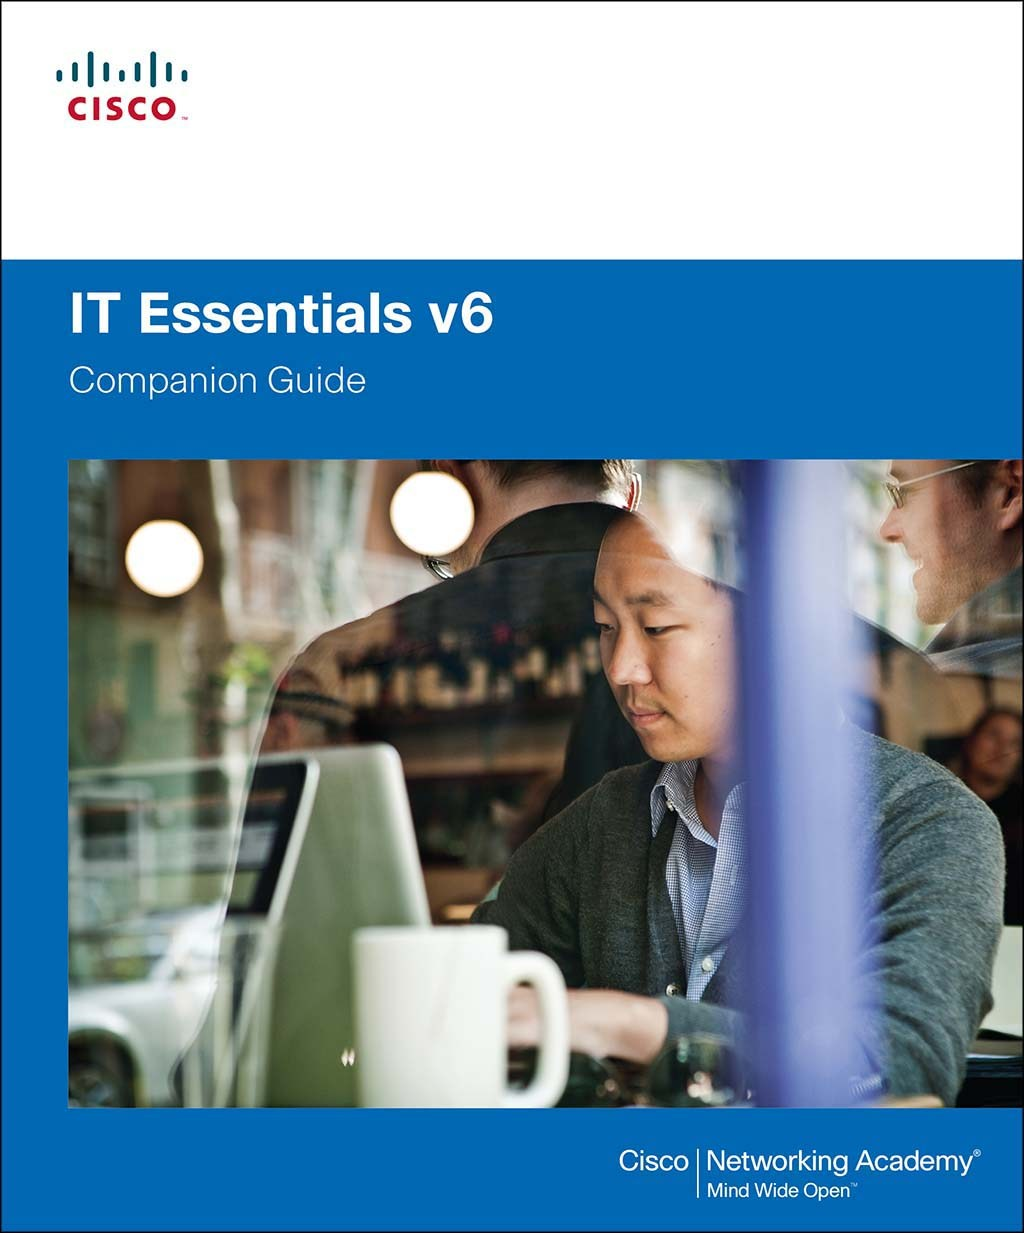 IT Essentials Companion Guide v6, 6th Edition